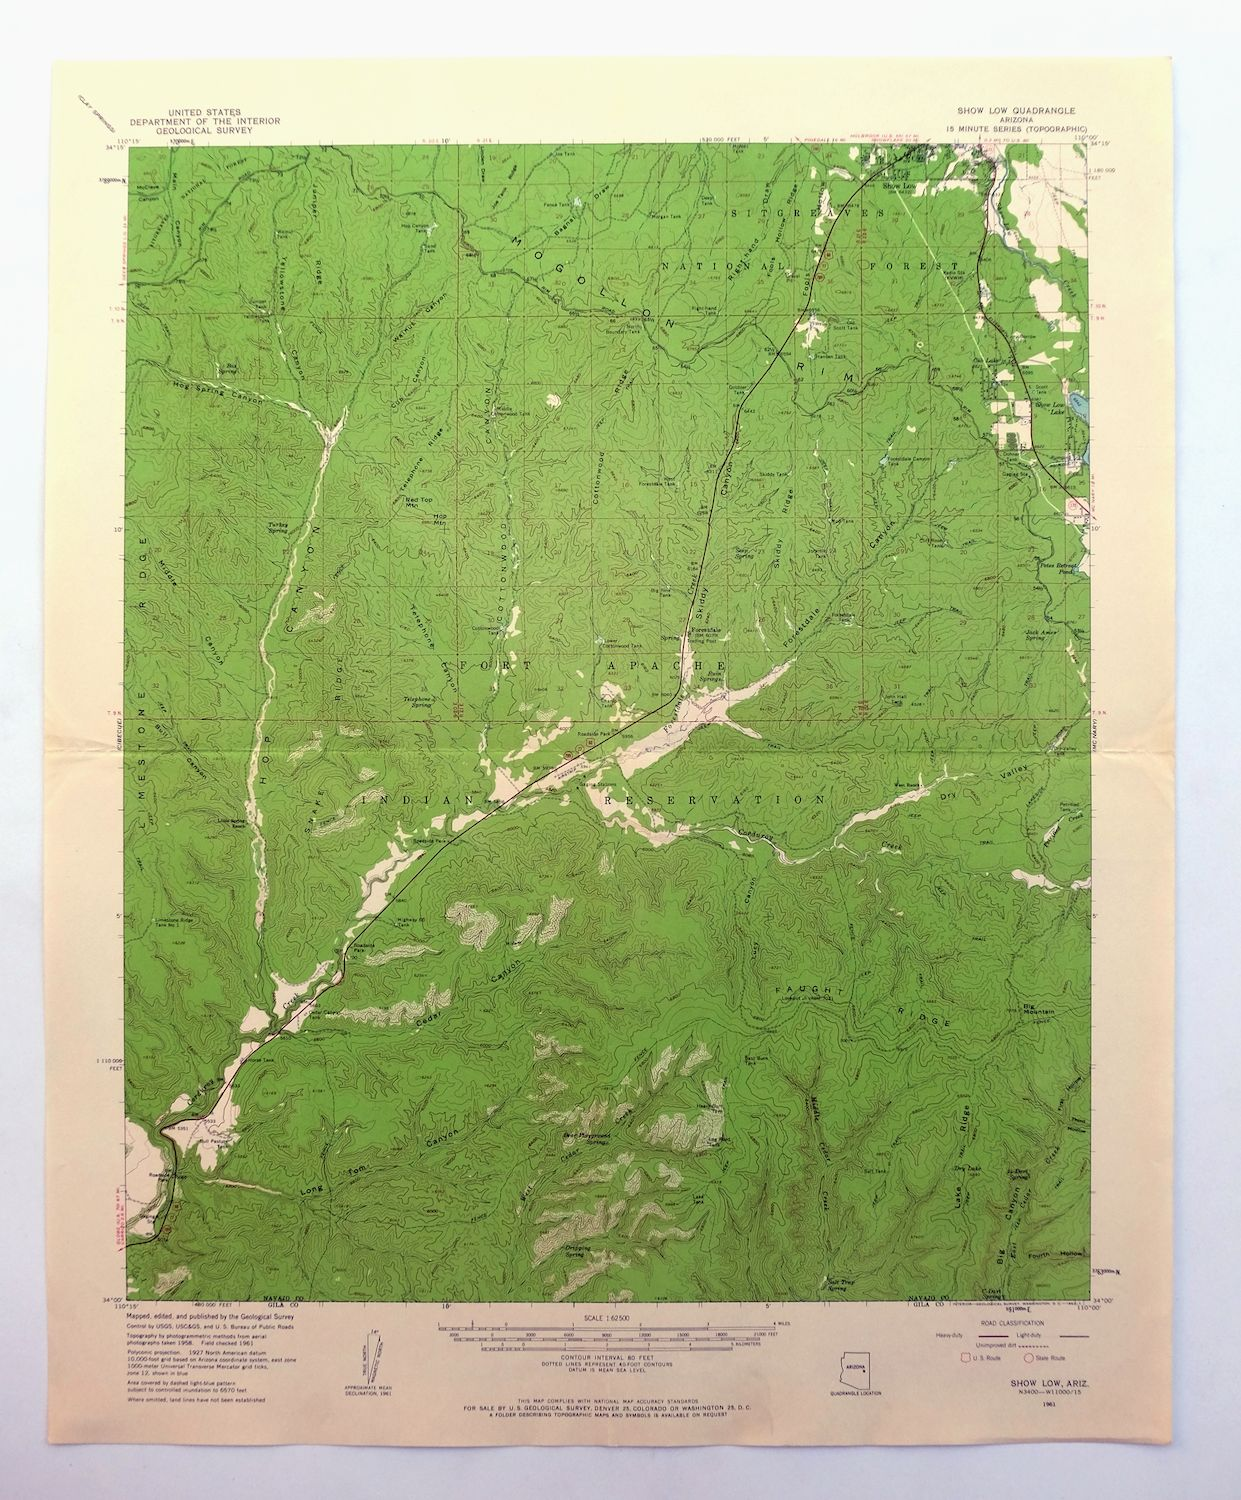 Topo Map Of Arizona.Details About Show Low Arizona Vintage Usgs Topographic Map 1961 Fort Apache Reservation Topo